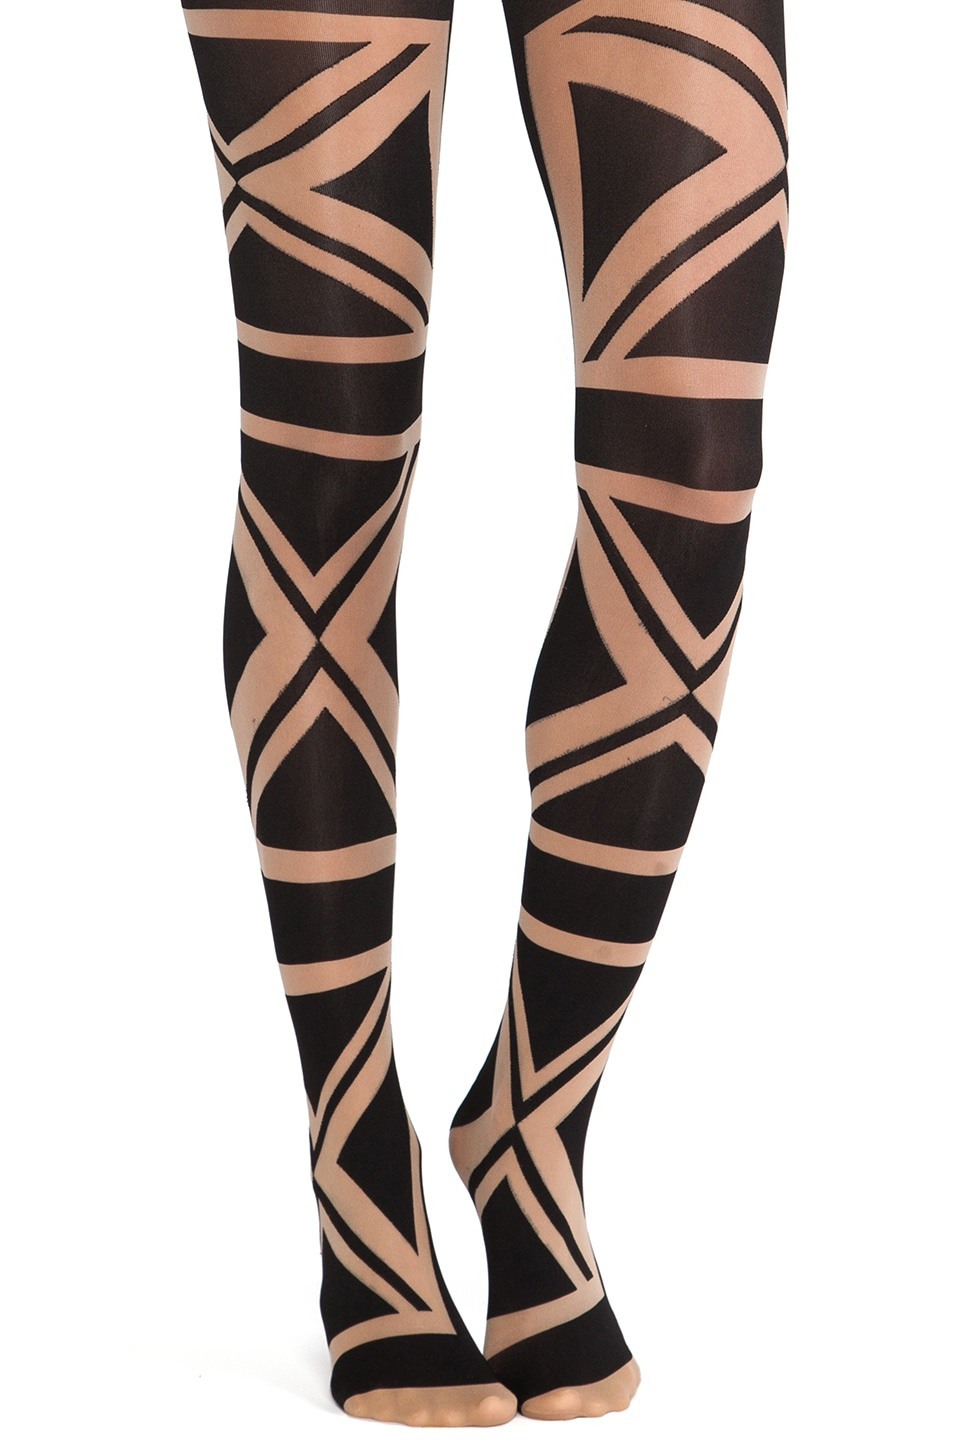 Pretty Polly Union Flag Tights in Nude/Black